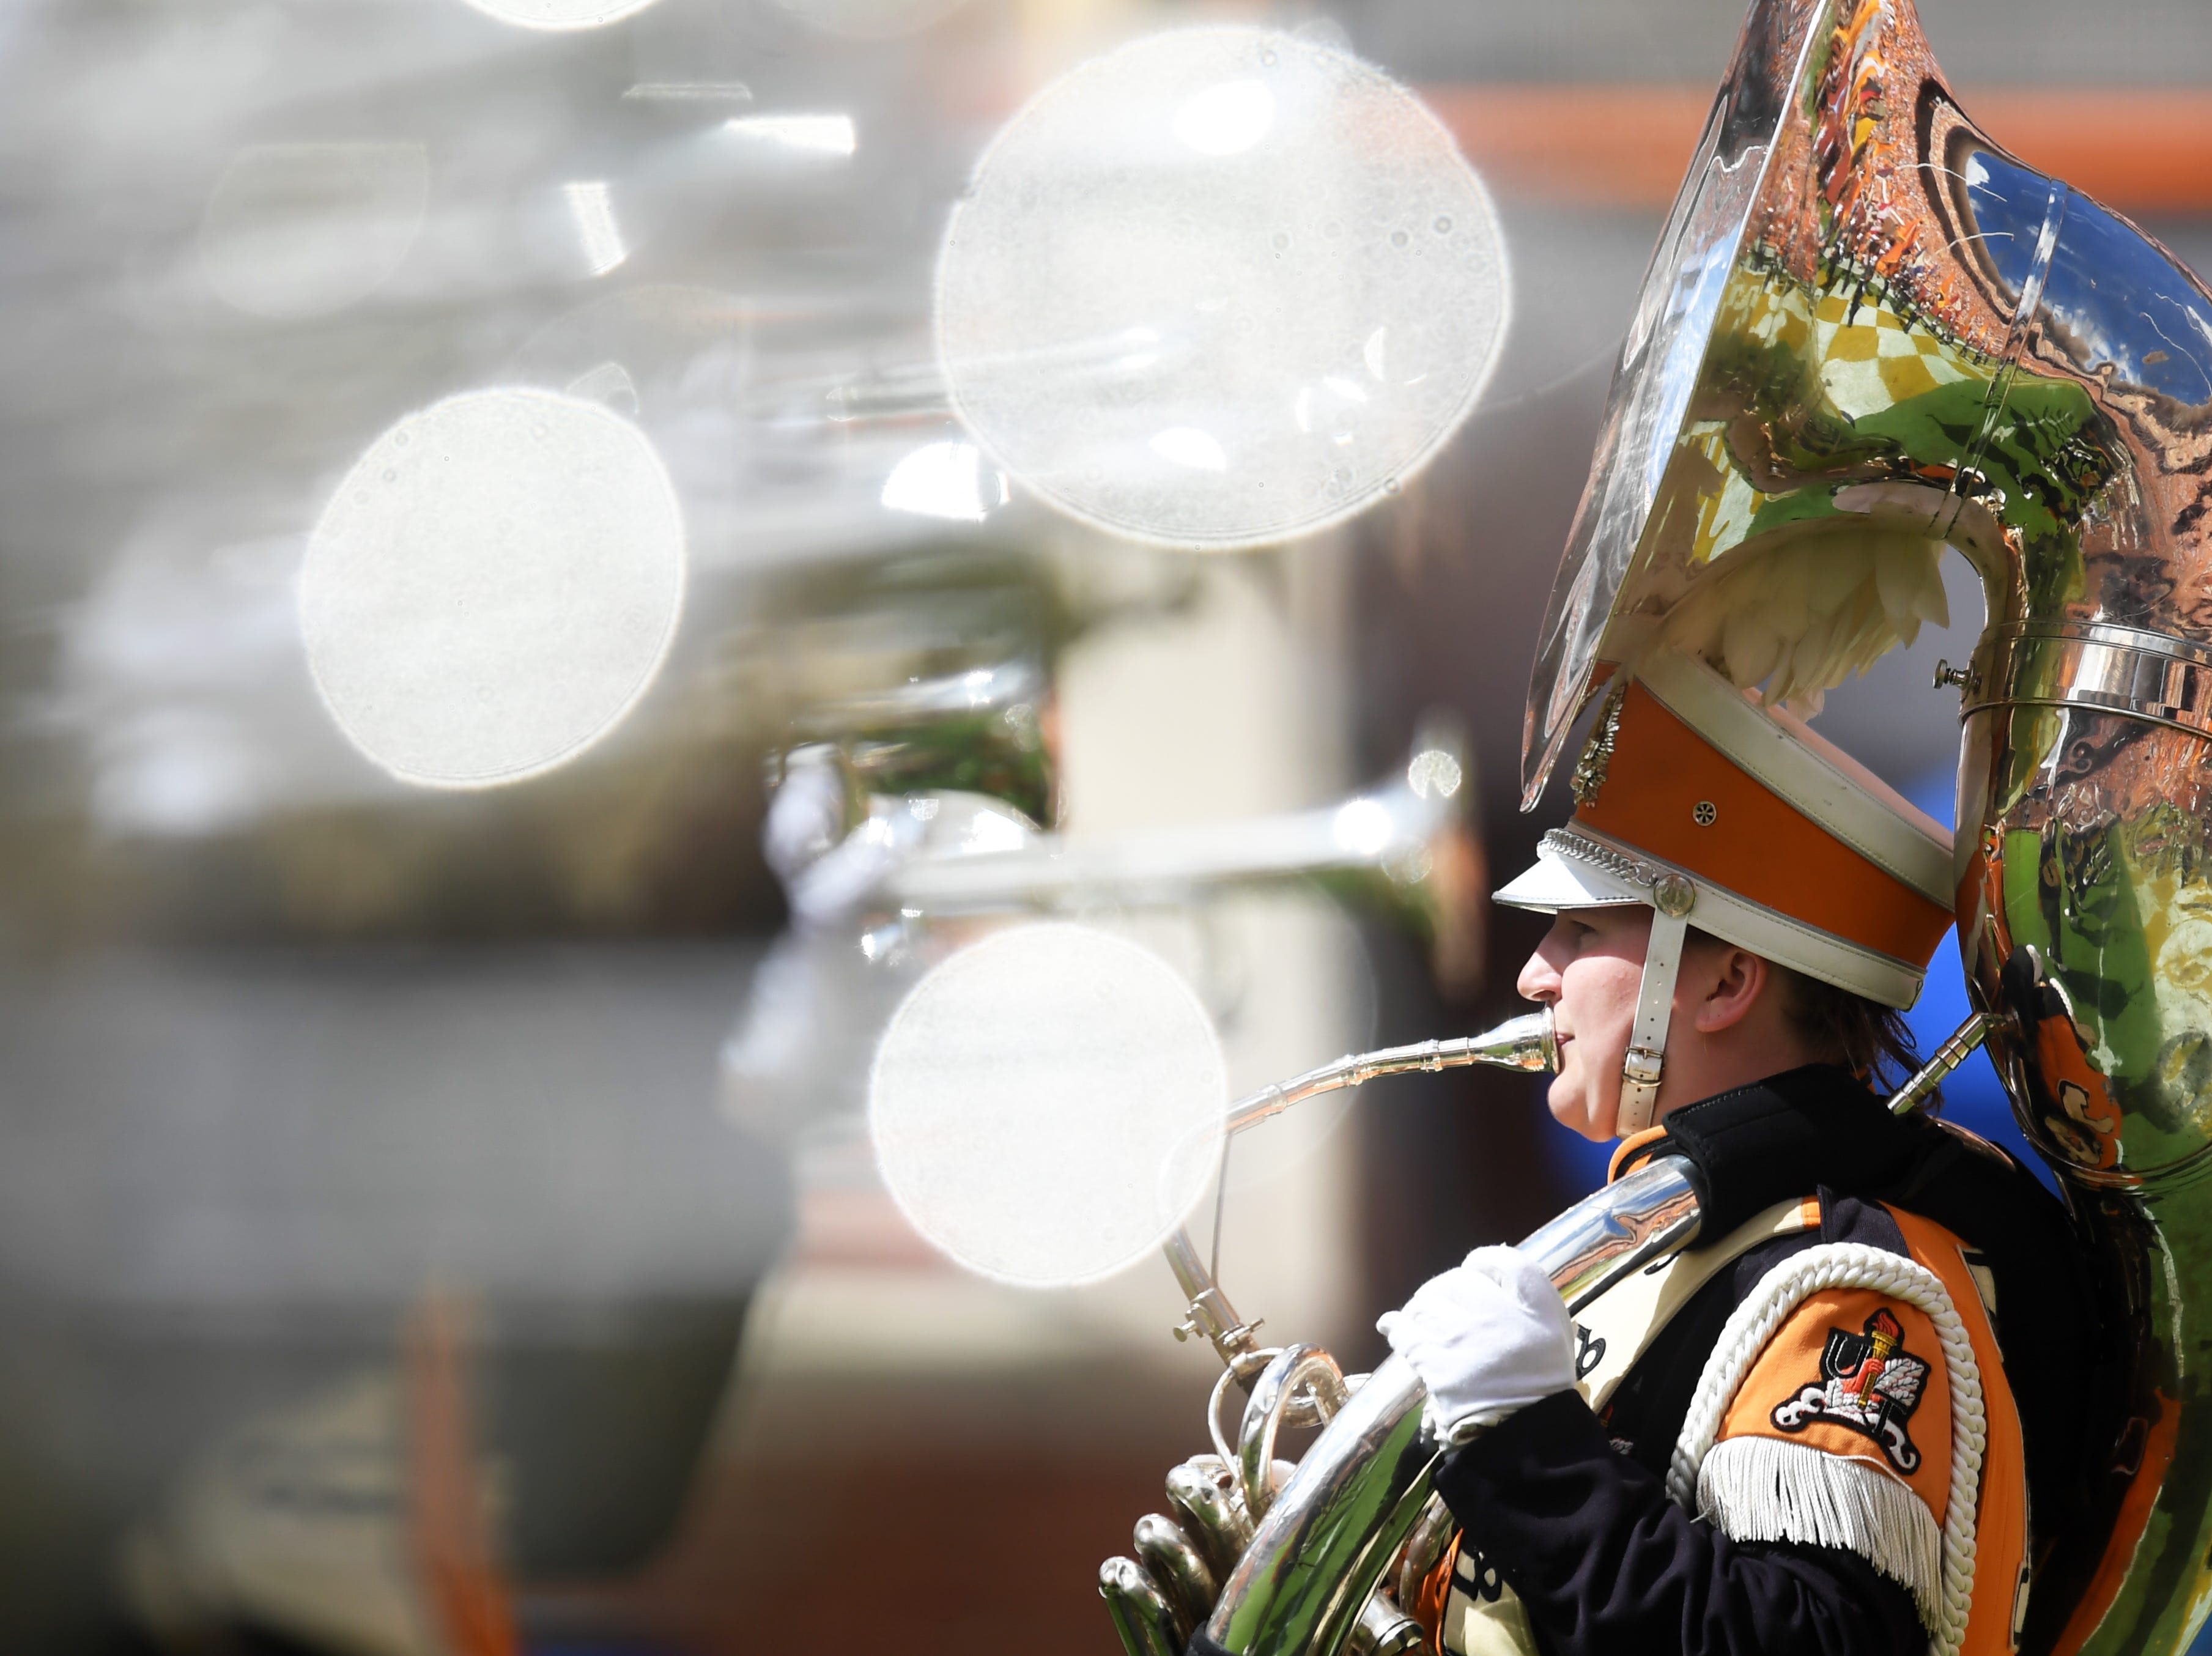 A member of the Pride of the Southland Marching Band plays before a game between UT and UTEP in Neyland Stadium Sept. 15, 2018.